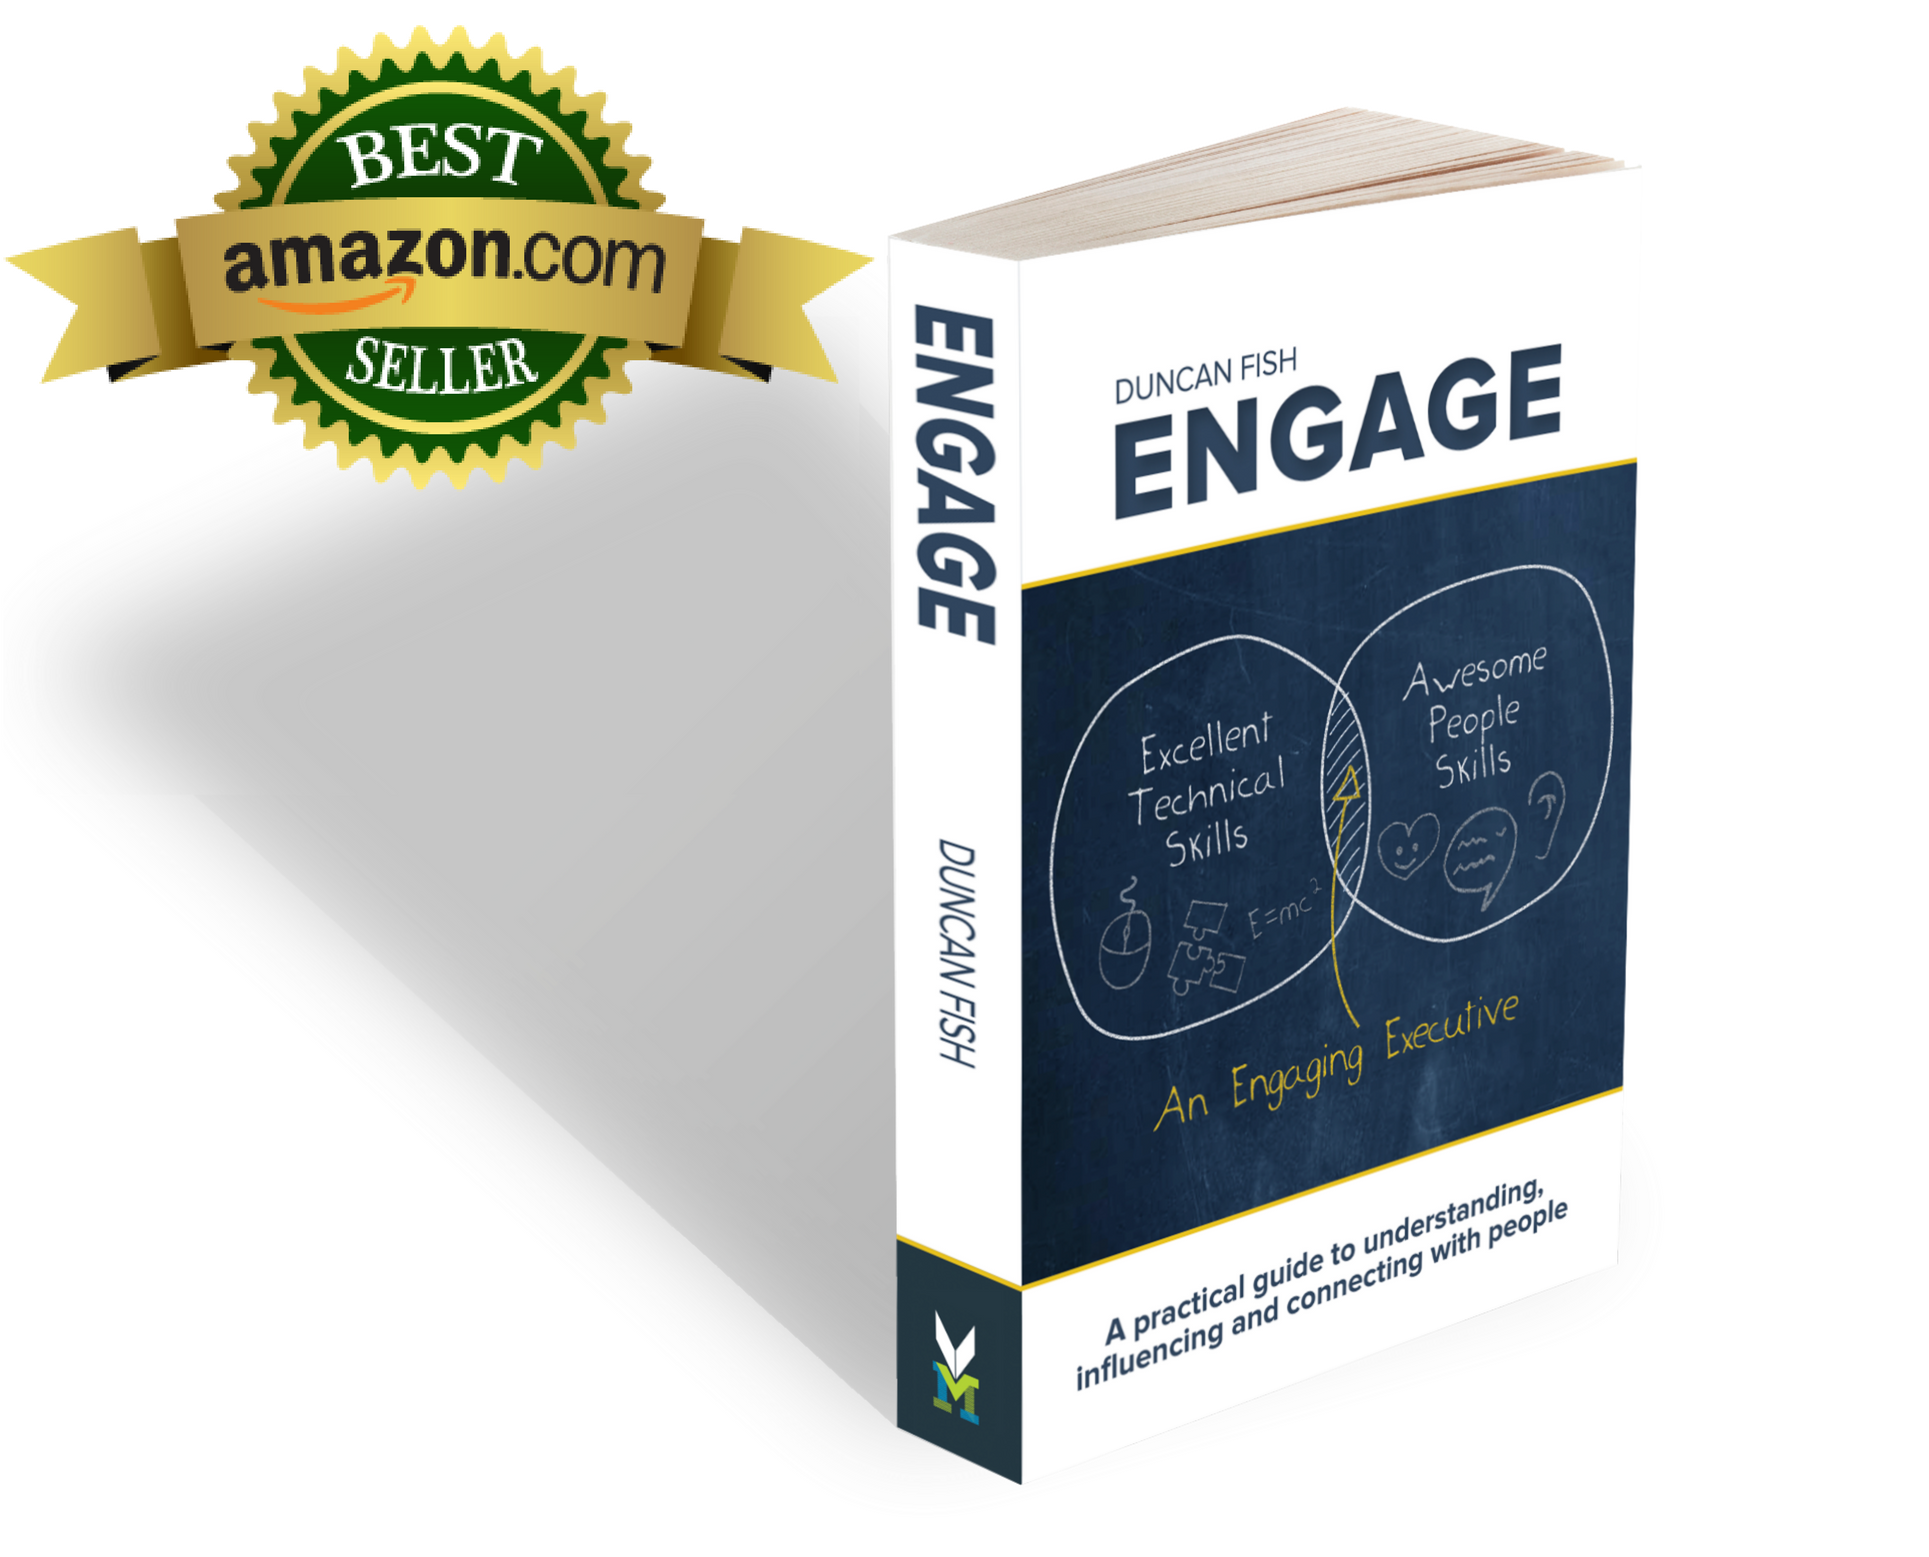 Want to know how to ENGAGE people?